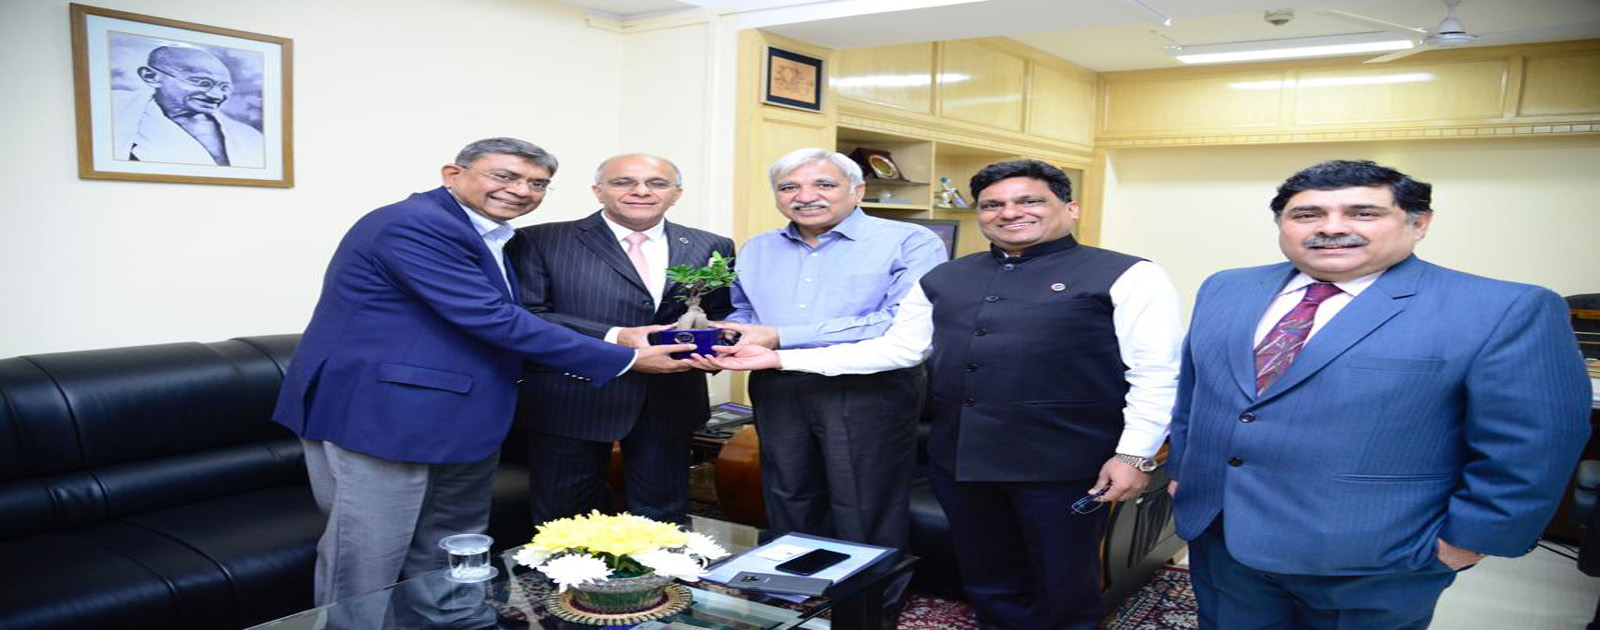 Call on Meeting with Shri Sunil Arora, Chief Election Commissioner of India